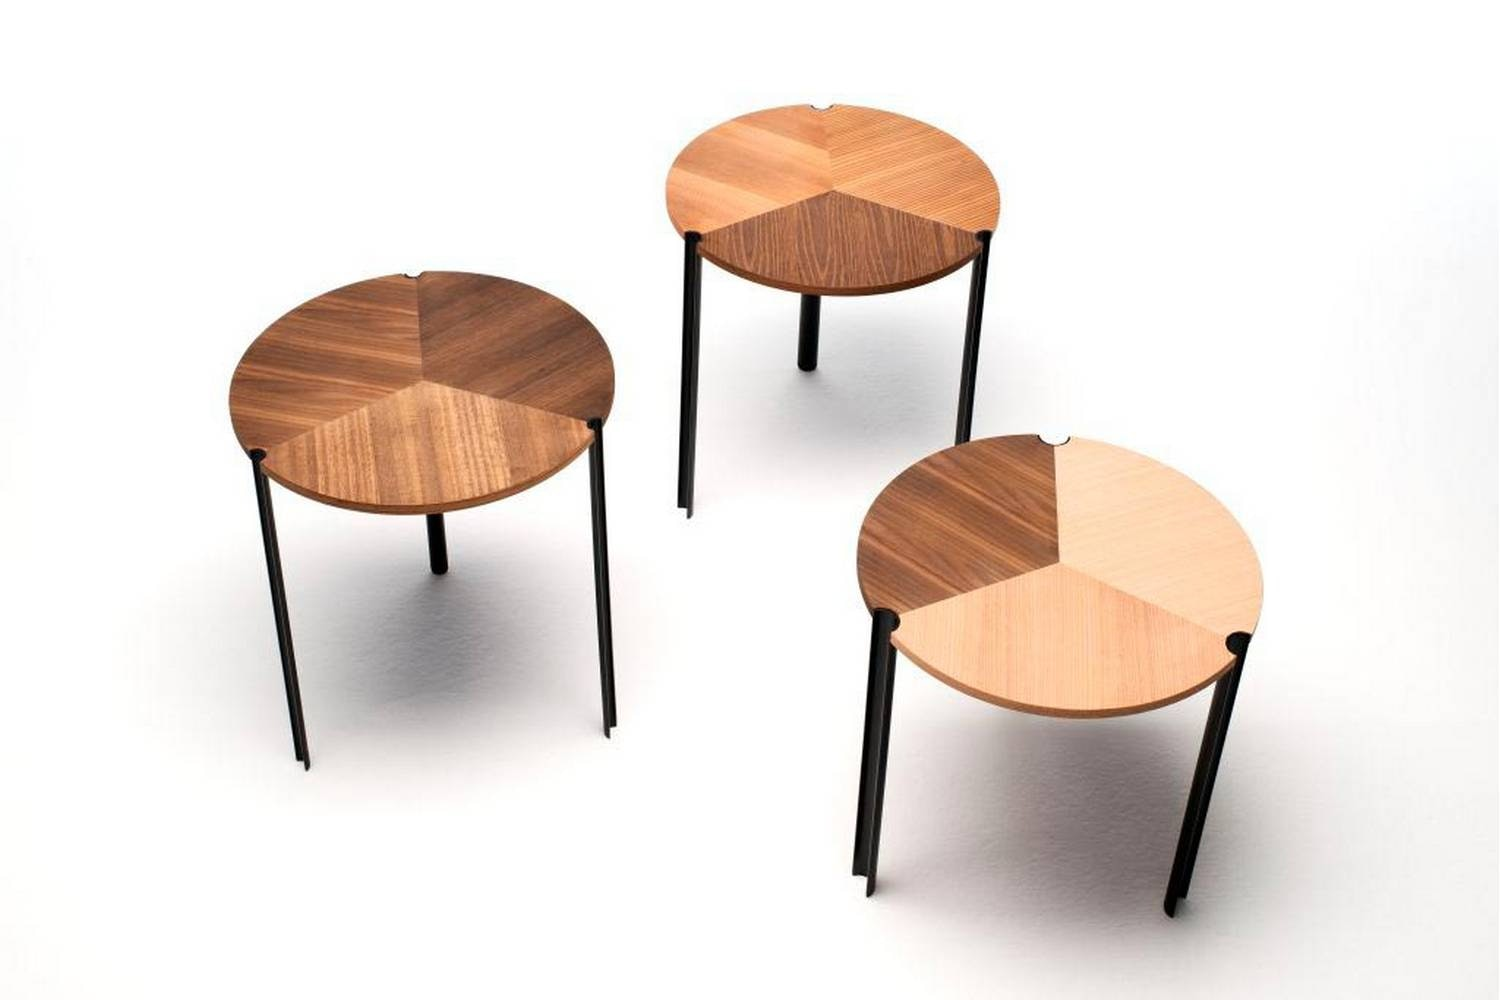 Starsky Set of Coffee Tables by David Lopez Quincoces for Living Divani